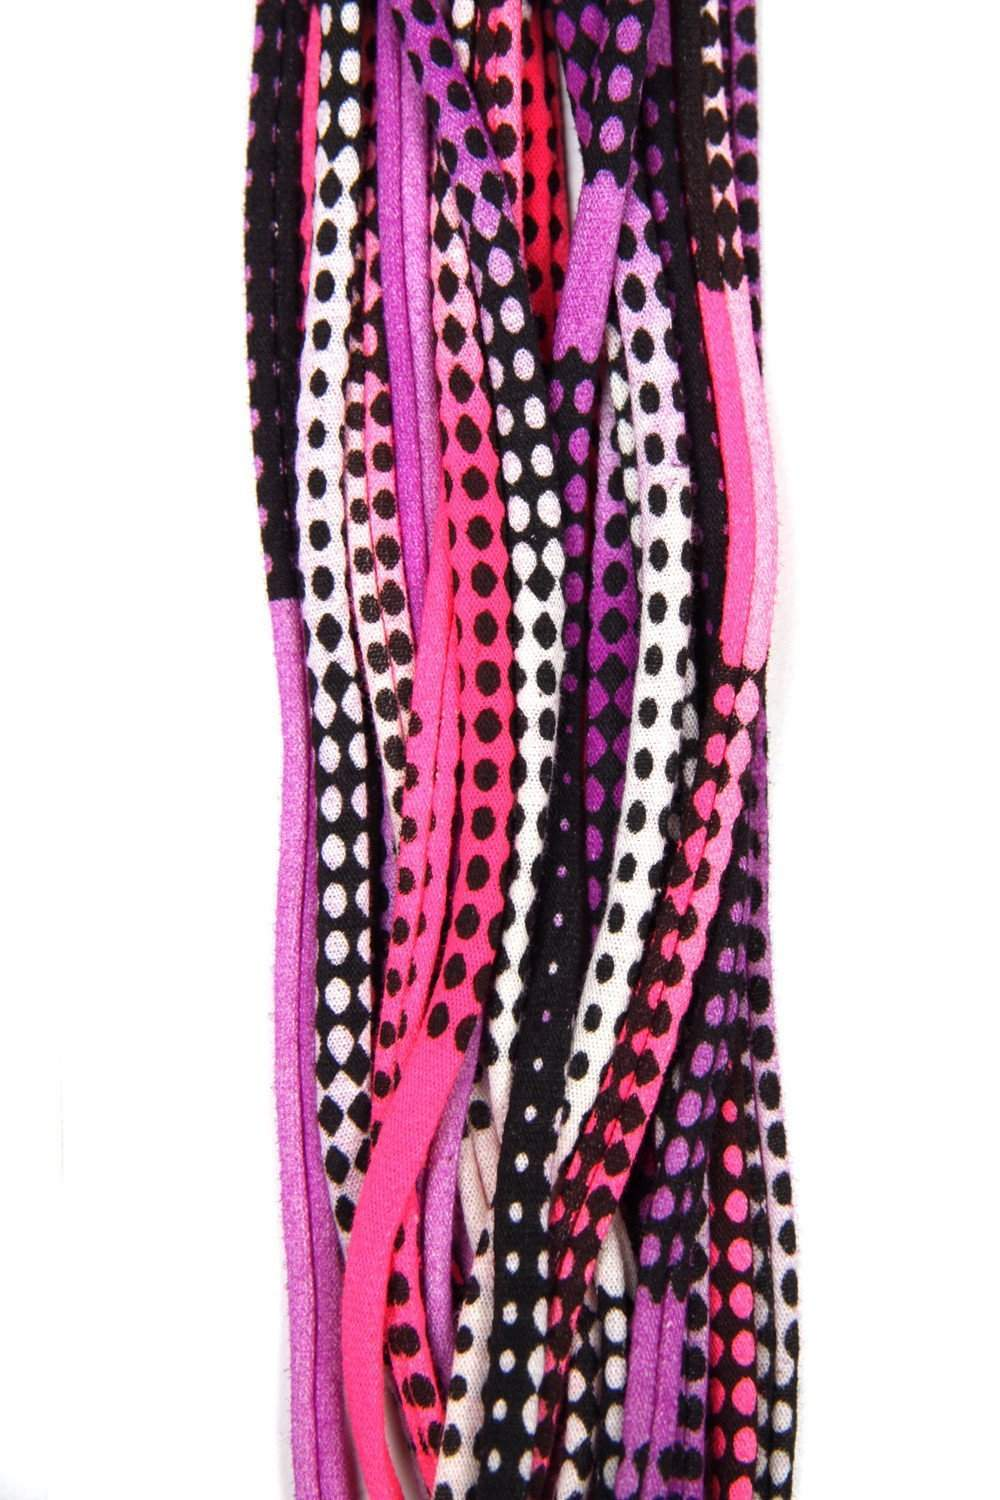 infinity scarves-Pink Purple Black Infinity Scarf-Necklush